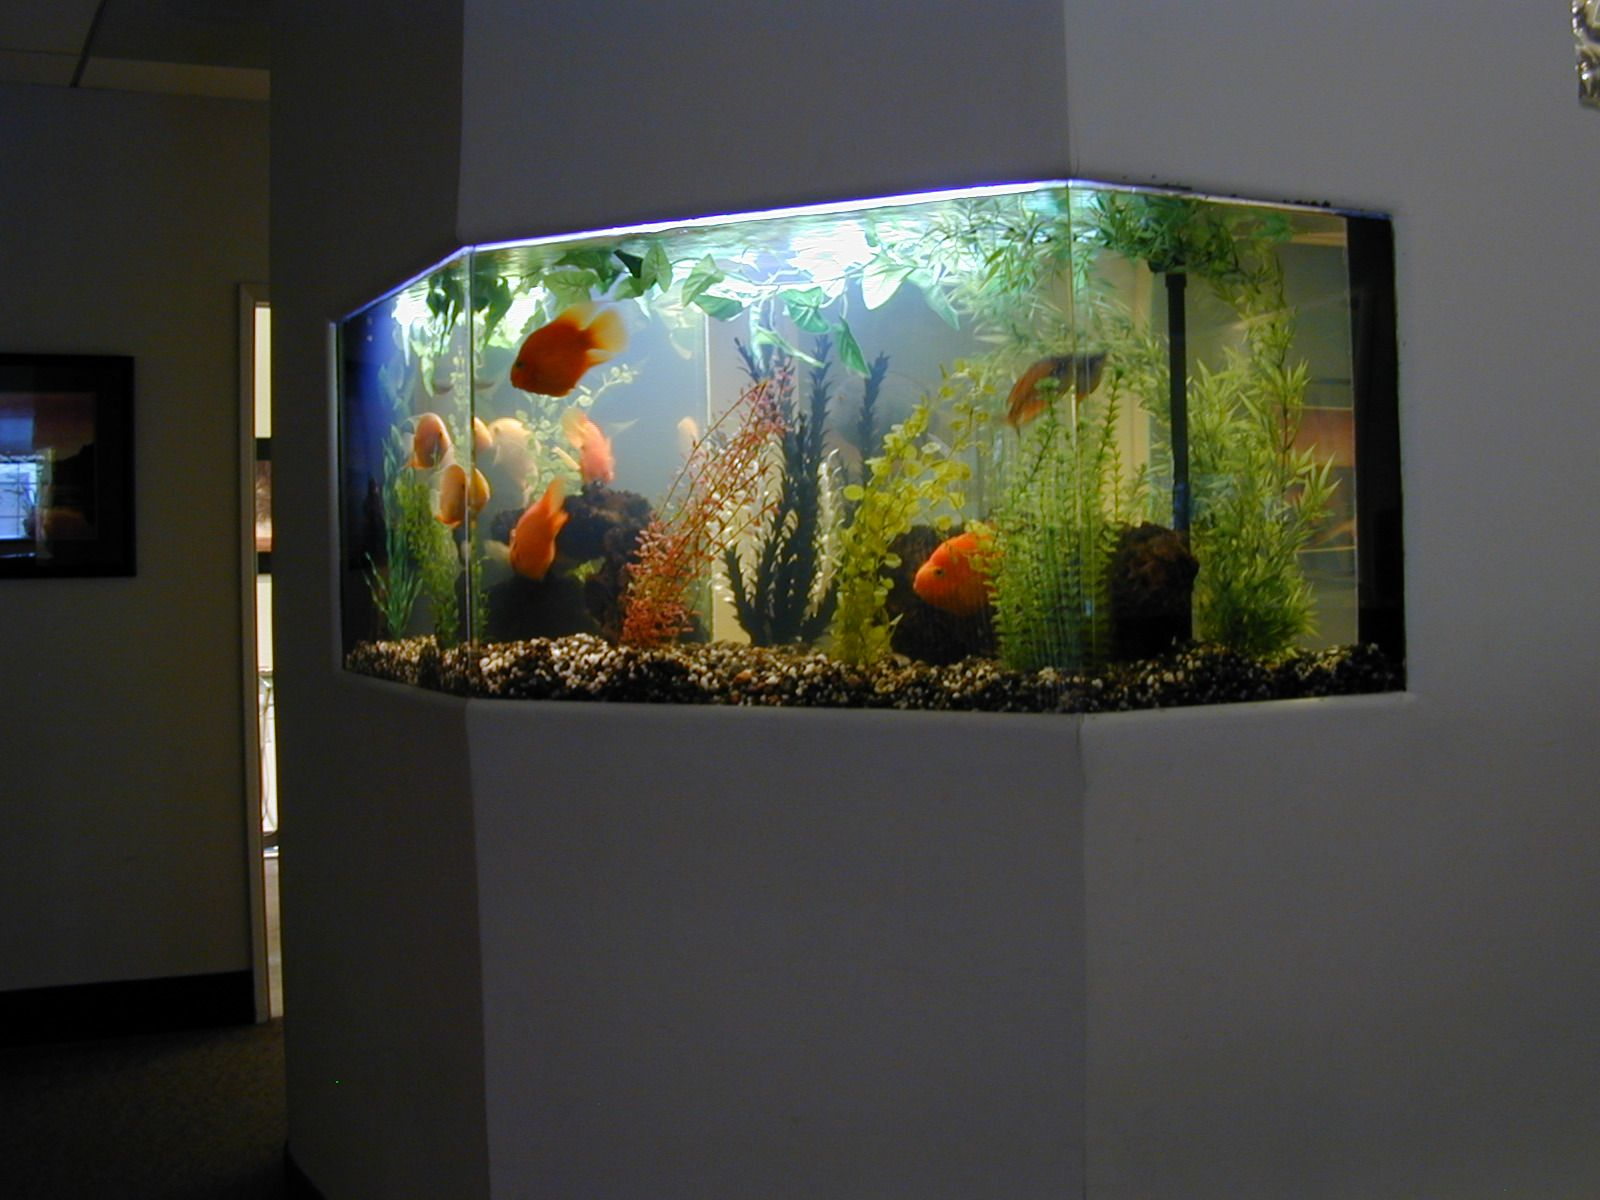 Small aquarium fish tanks - Transform The Way Your Home Looks Using A Fish Tank